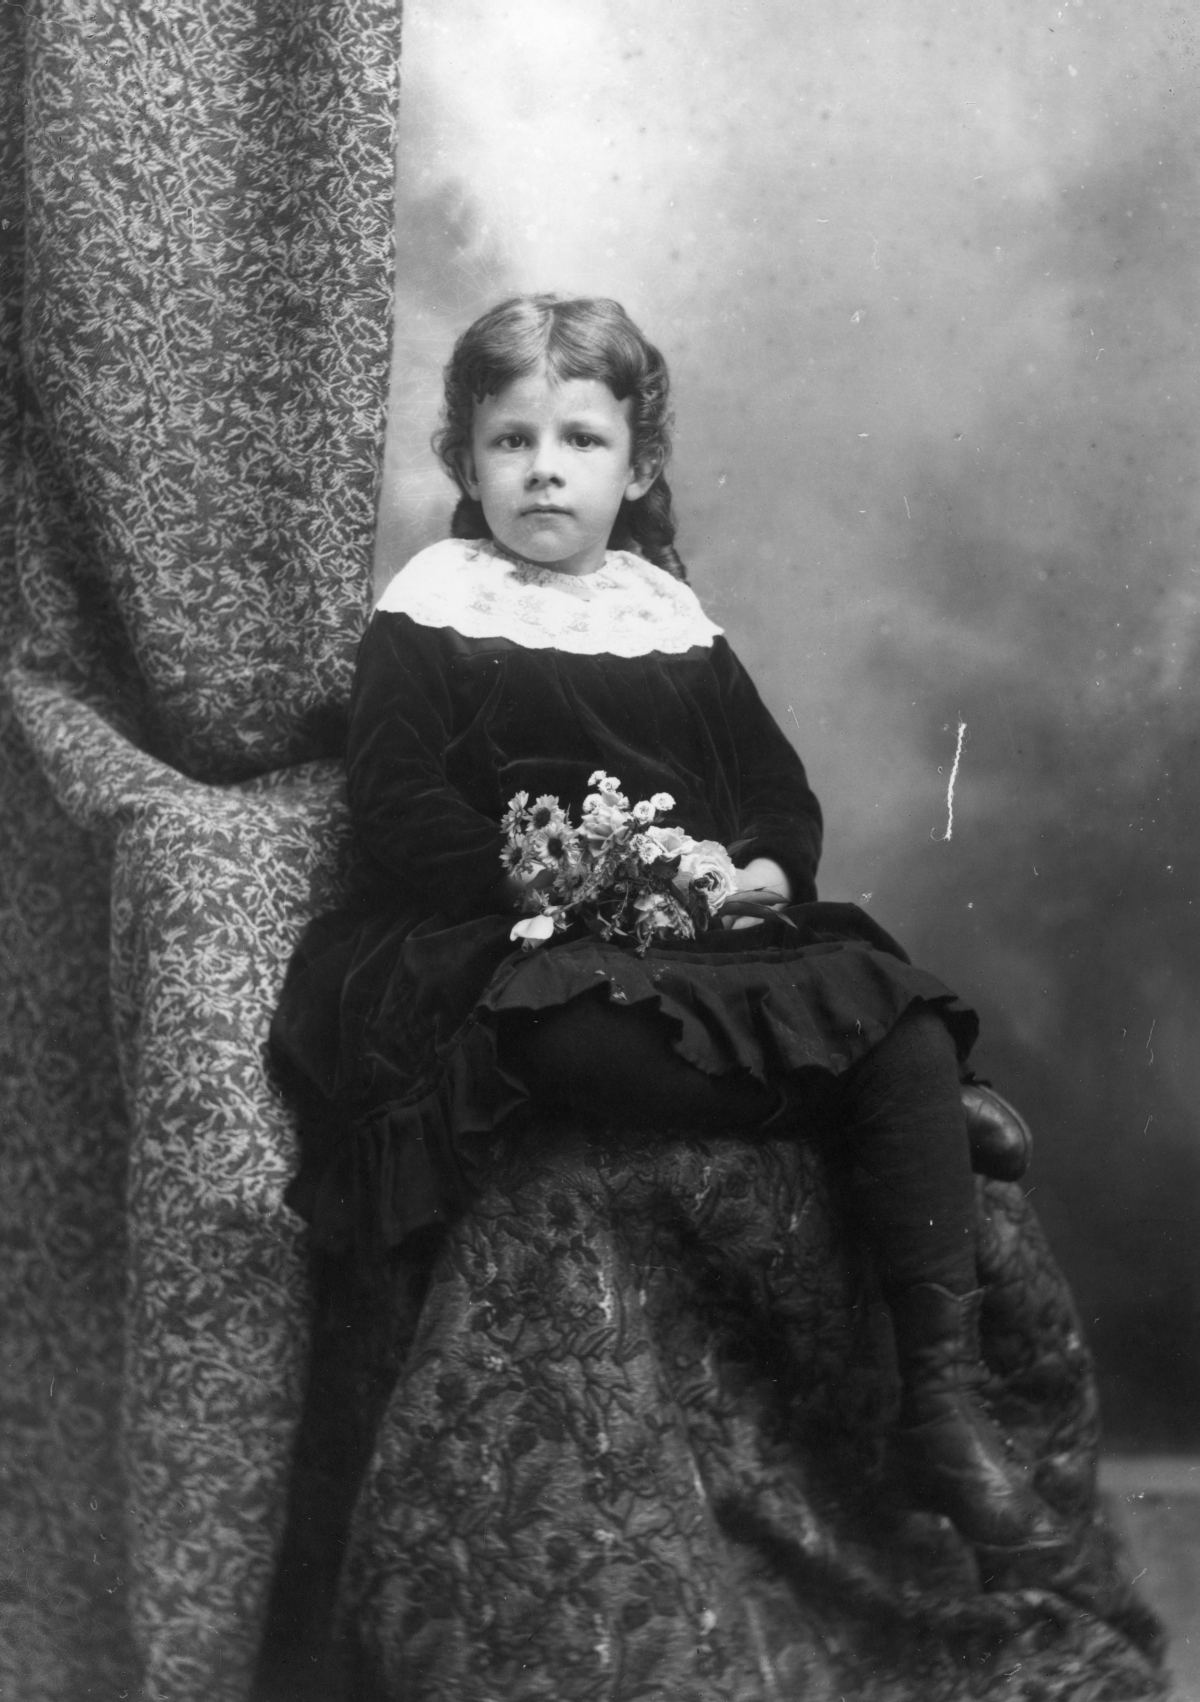 Seated girl holding a bouquet of flowers.